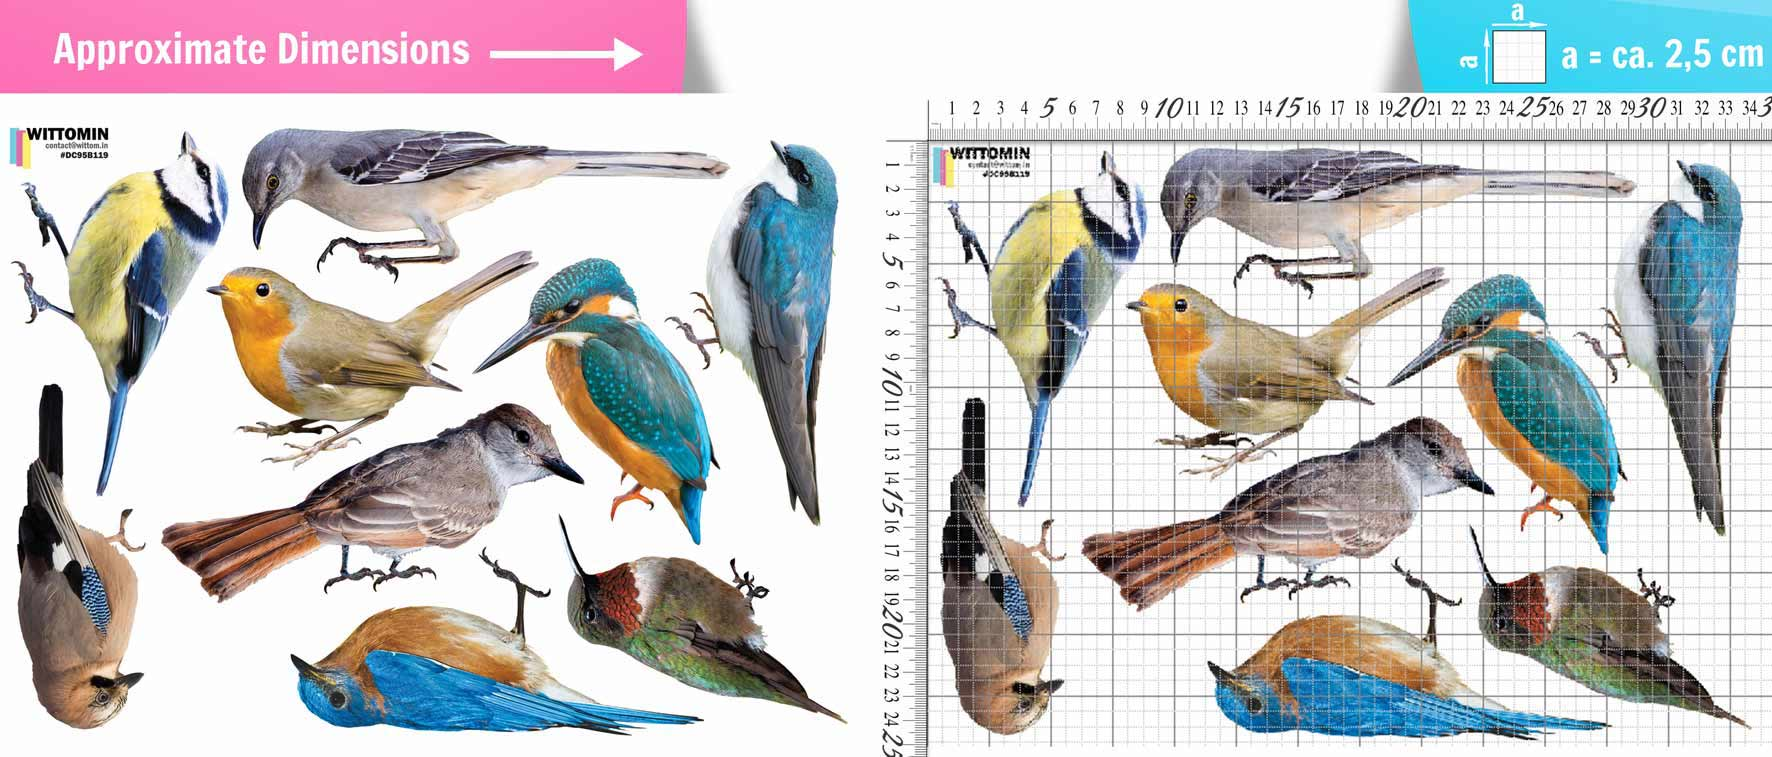 Colourful Birds sticker set from Wittomin